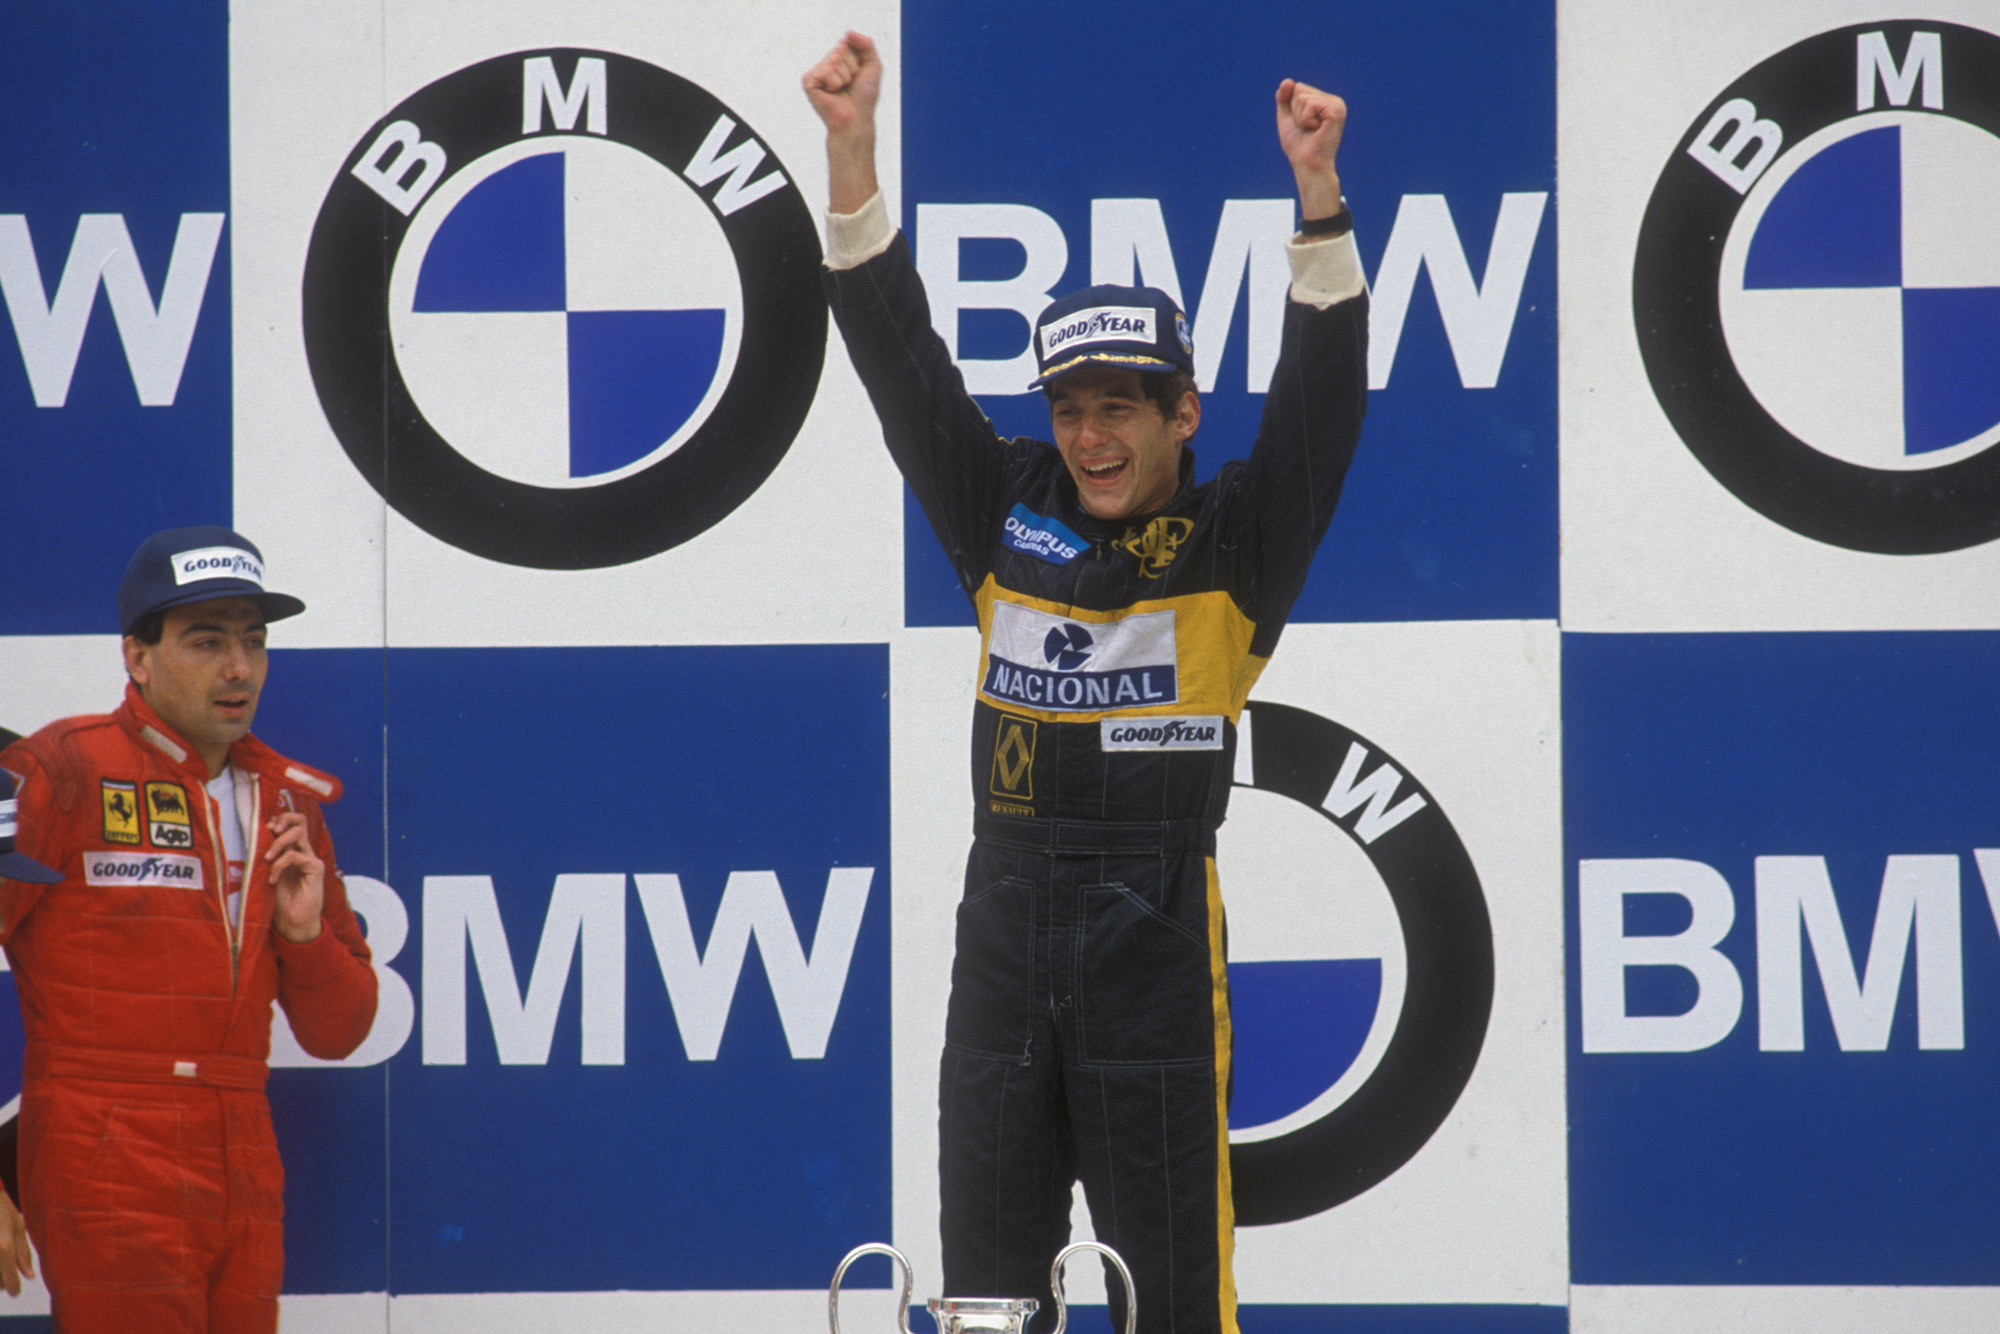 Ayrton Senna celebrates his first Formula 1 victory in the 1985 Portuguese Grand Prix